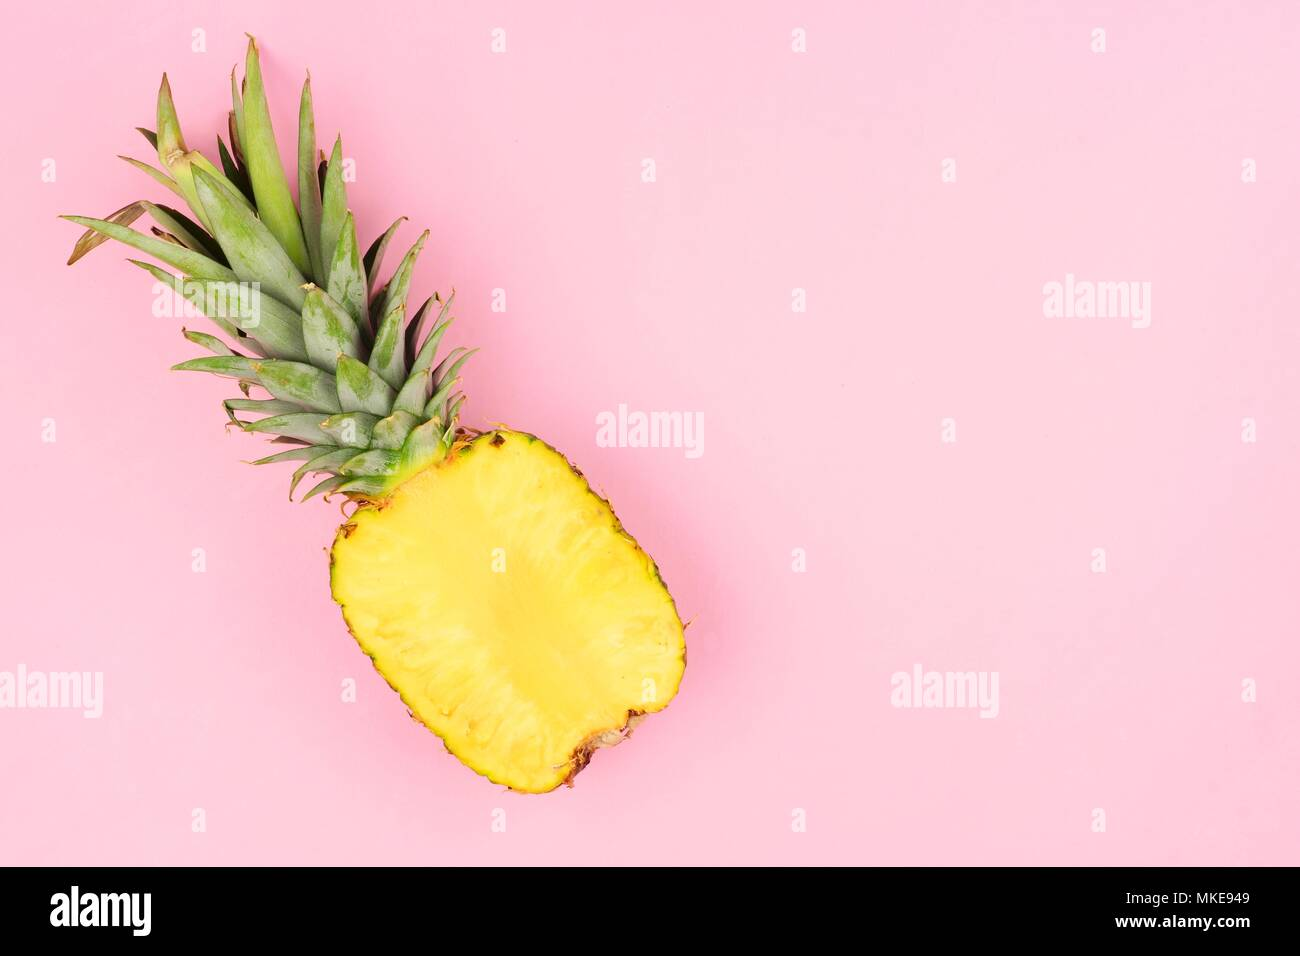 Half cut juicy pineapple on a pastel pink background. Minimal summer concept. Stock Photo